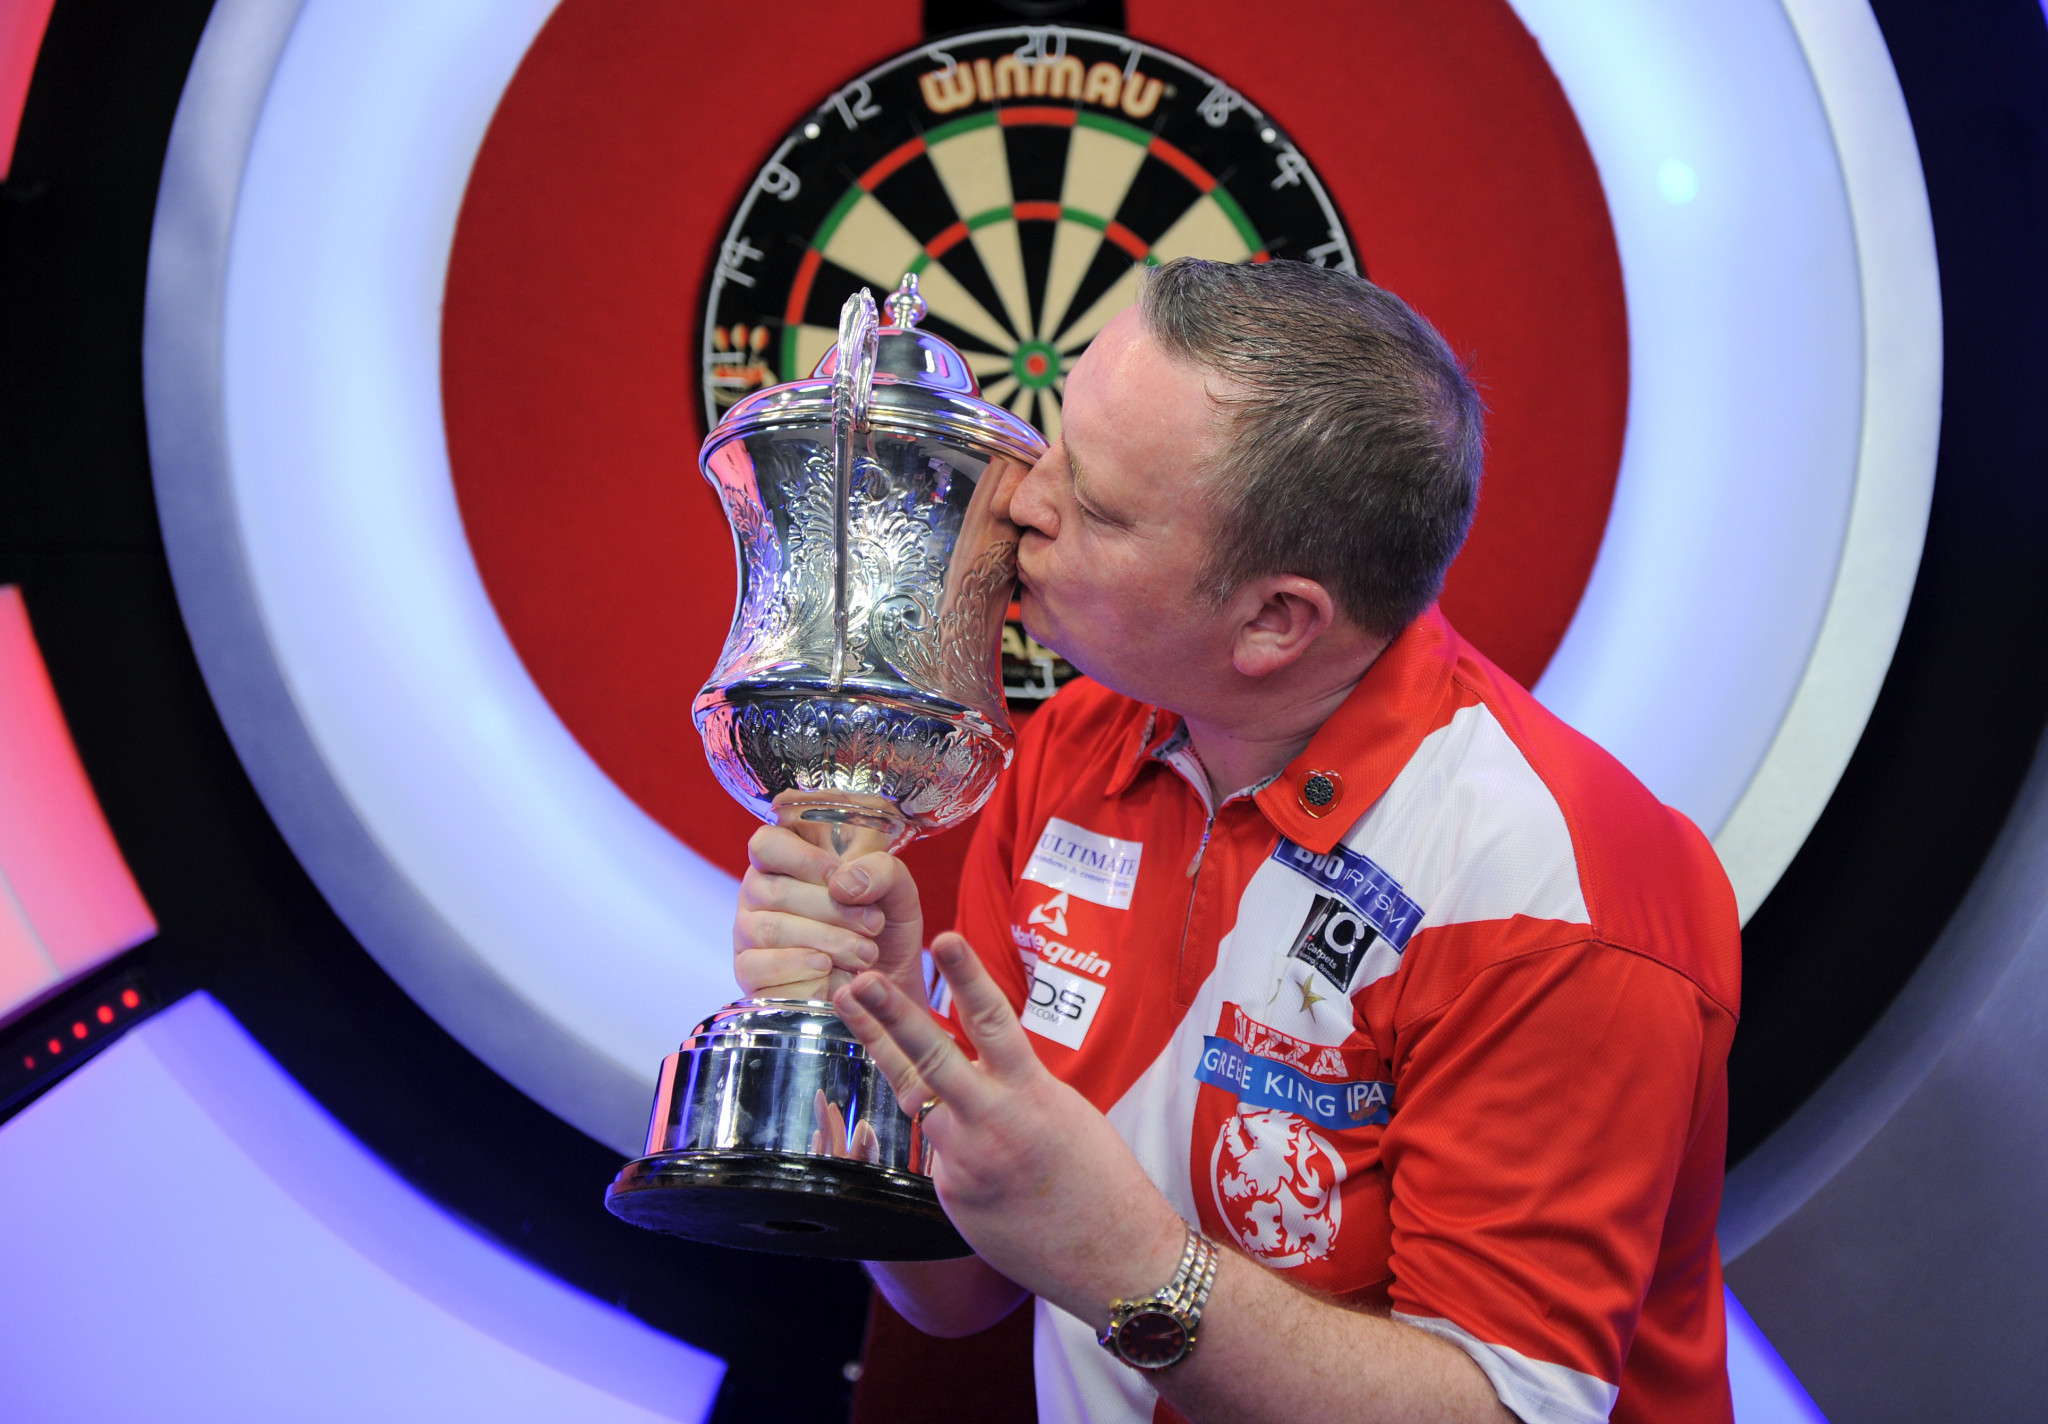 Durrant wins BDO World Championship title for third time in a row